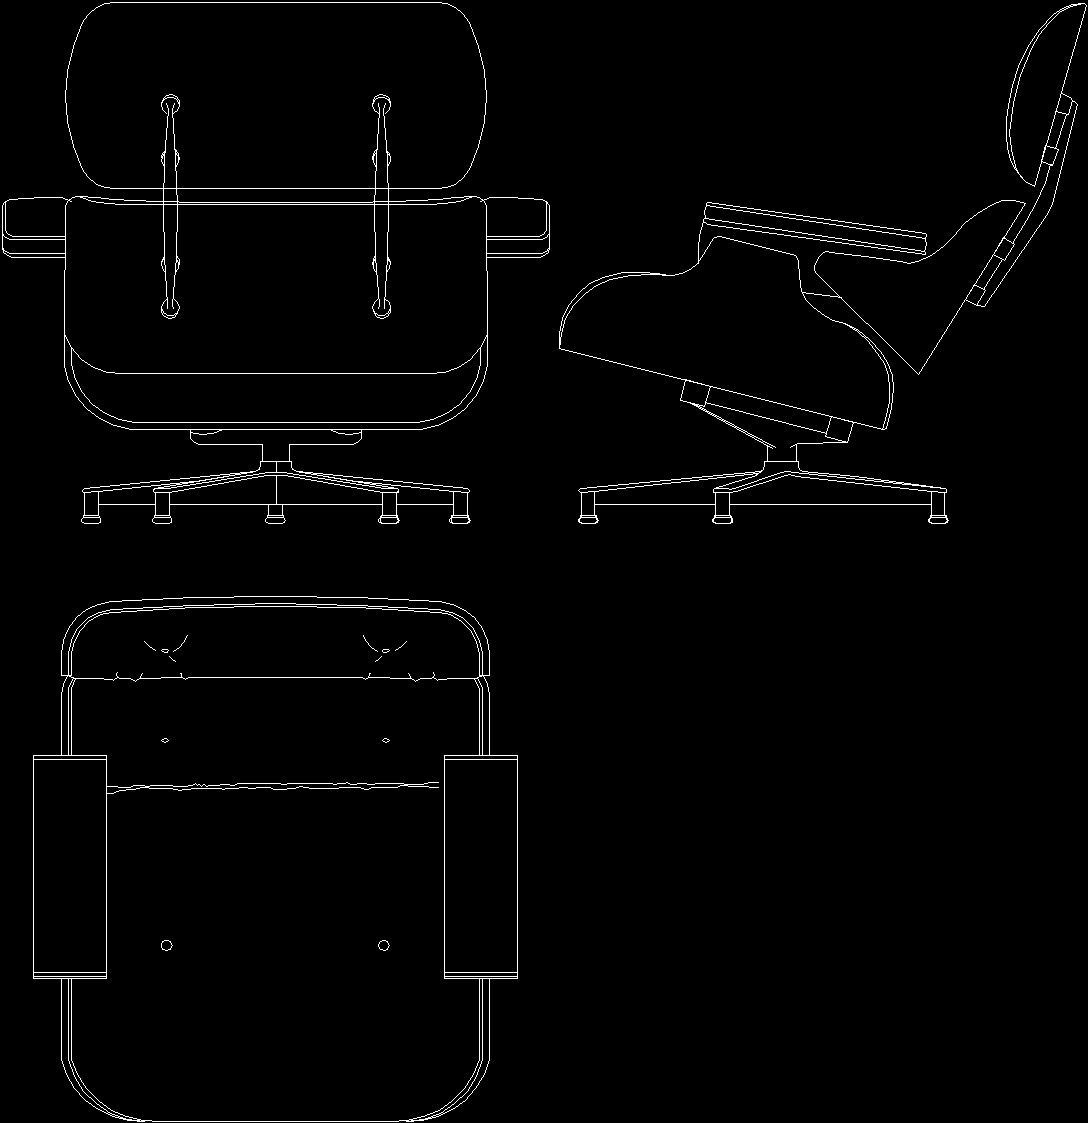 Eames Chair Autocad Block Charles Eames Lounge Chair 1956 Dwg Block For Autocad